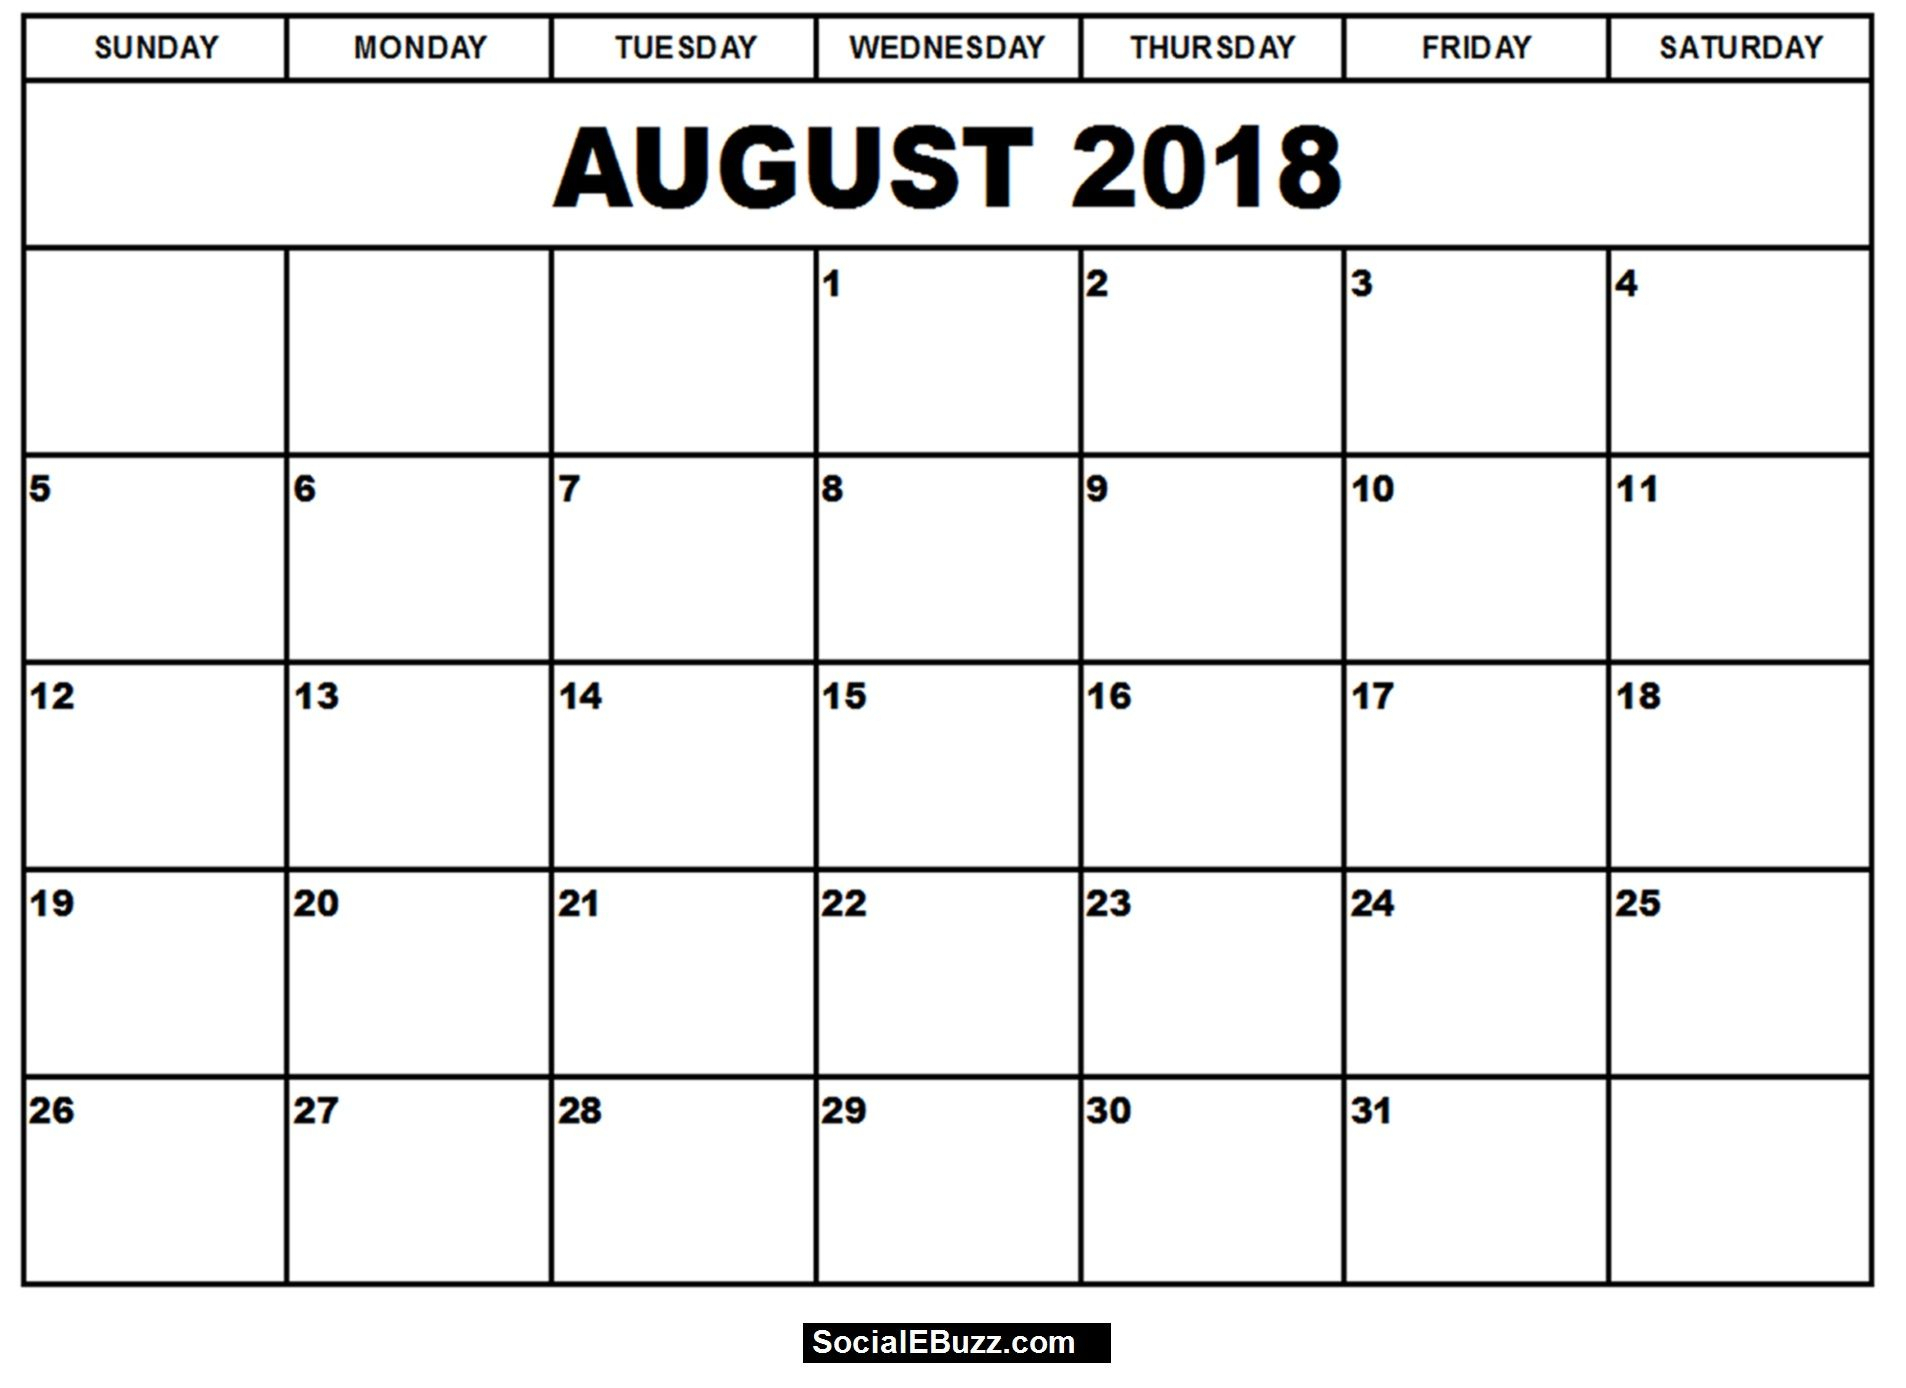 Blank August 2018 Calendar, August 2018 Printable Calendar, Calendar for Blank Calender Of August